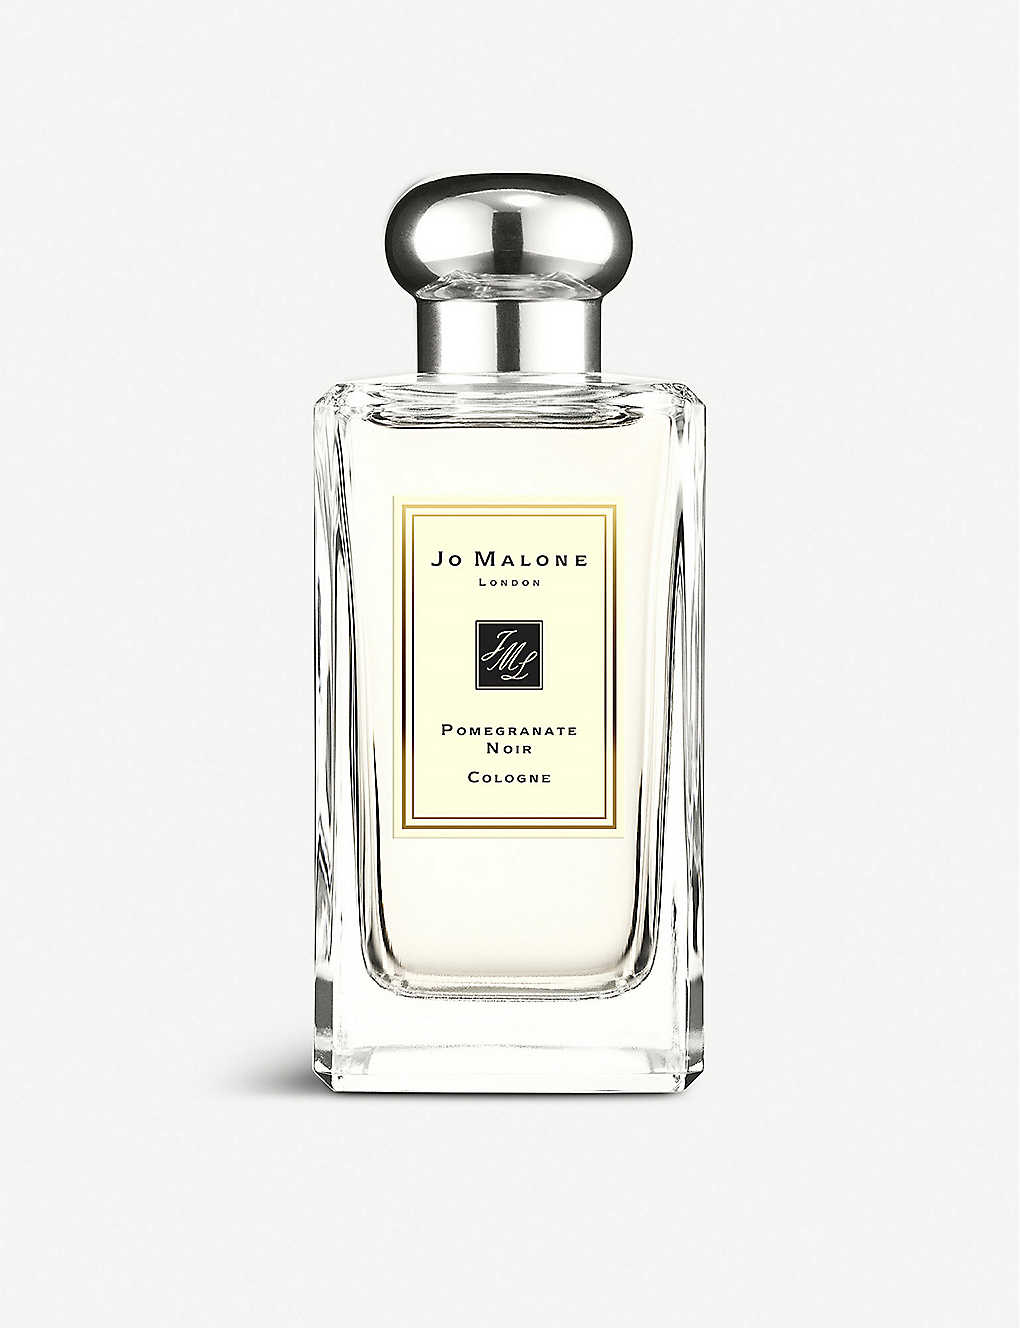 JO MALONE LONDON: Pomegranate Noir cologne 100ml